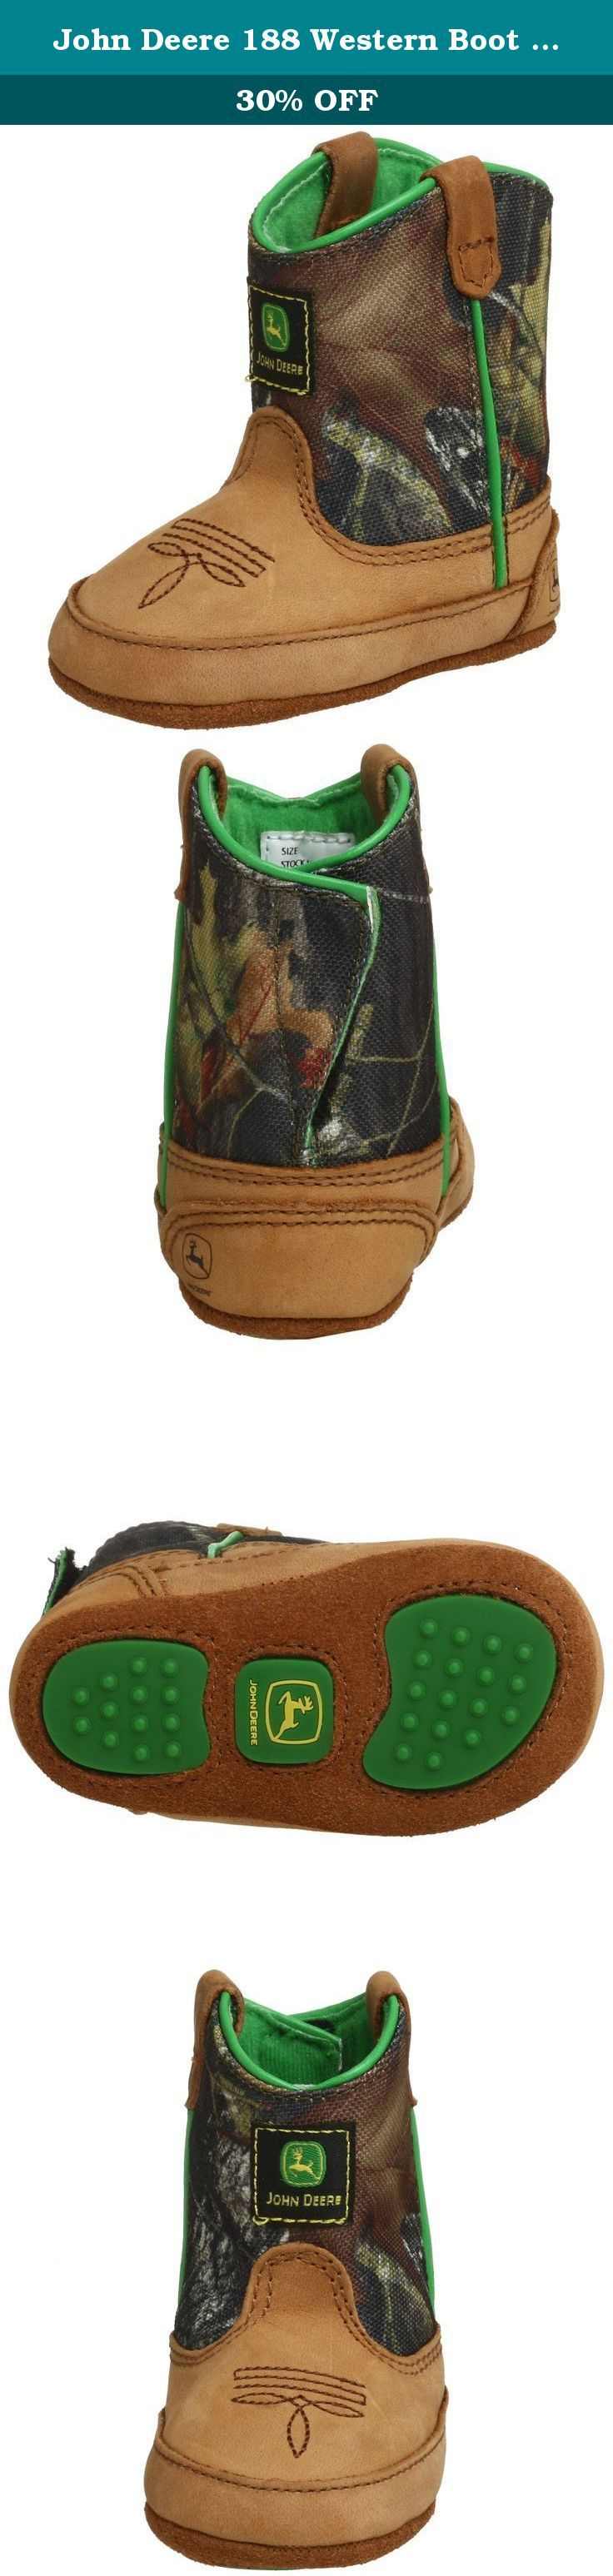 John Deere 188 Western Boot (Infant/Toddler),Camouflage,4 M US Toddler. John Deere Crib Series Classic Pull-On Boots Featuring a tan crazy horse foot with a leather shaft, this John Deere Crib Series Classic Pull-On Boots with a John Deere Wellington style for the crib is a great quality product. It has a stitch and turn construction, a soft moisture wicking lining and velcro back closure for easy entry/exit. In addition, the grip pads on the sole prevent slipping, further making it a…